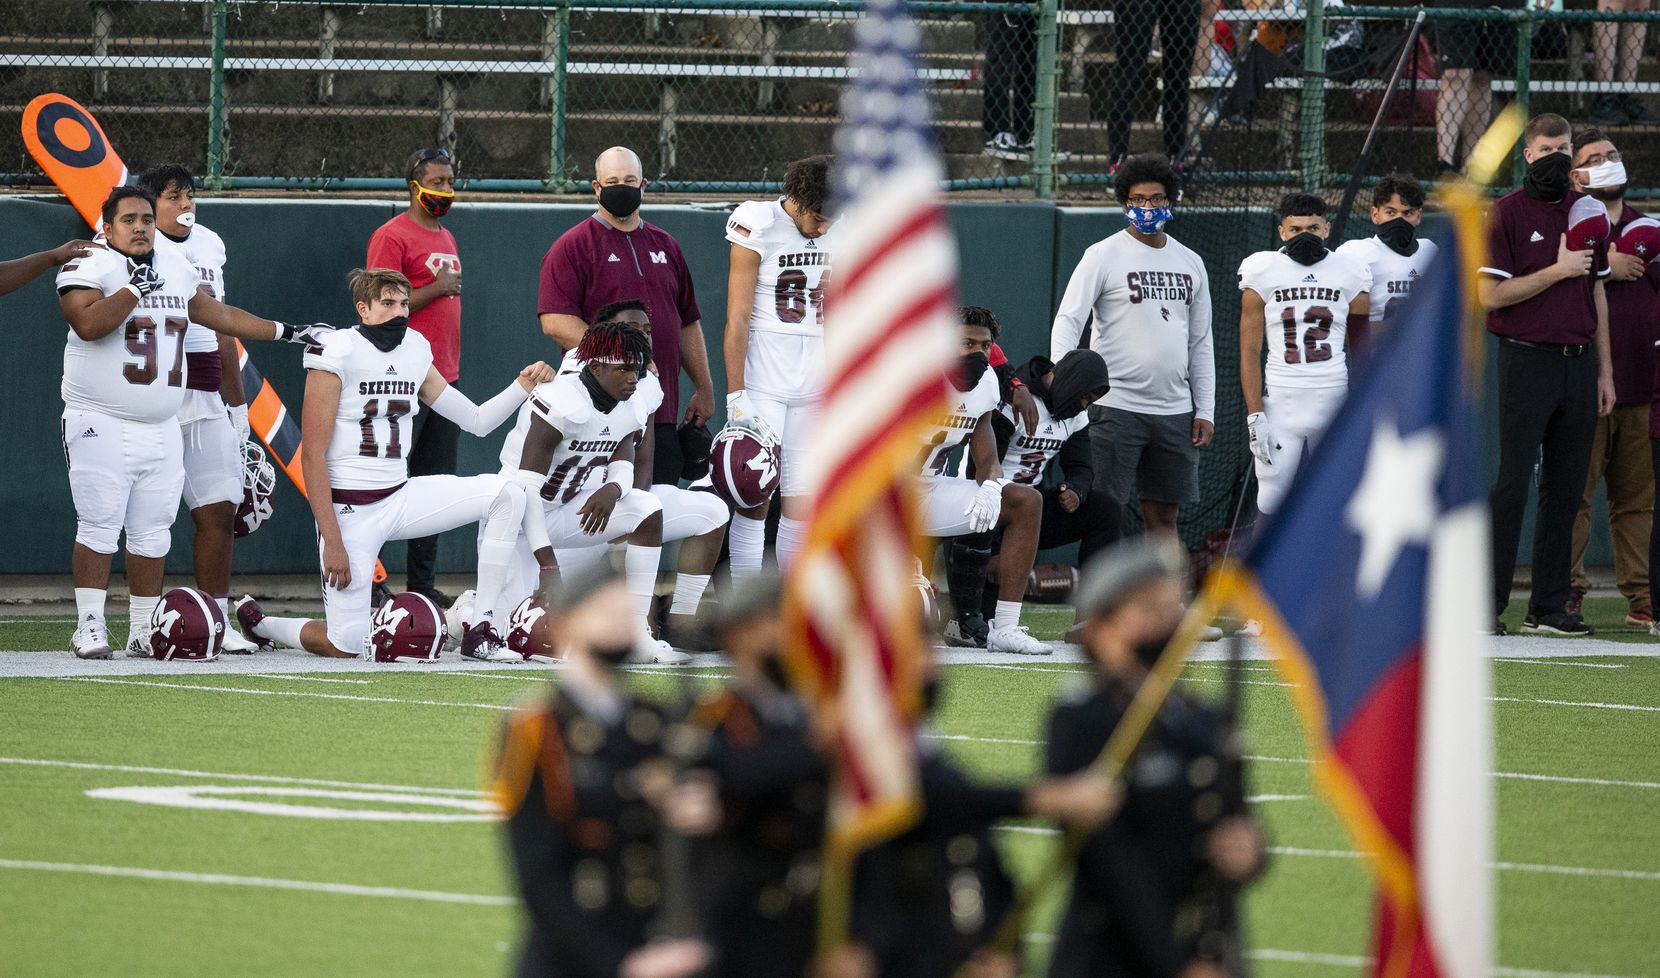 Mesquite players kneel during the National Anthem to bring attention to social justice issues before the first half of a high school football game against South Grand Prairie at the Gopher-Warrior Bowl in Grand Prairie, Thursday, October 1, 2020. (Brandon Wade/Special Contributor)